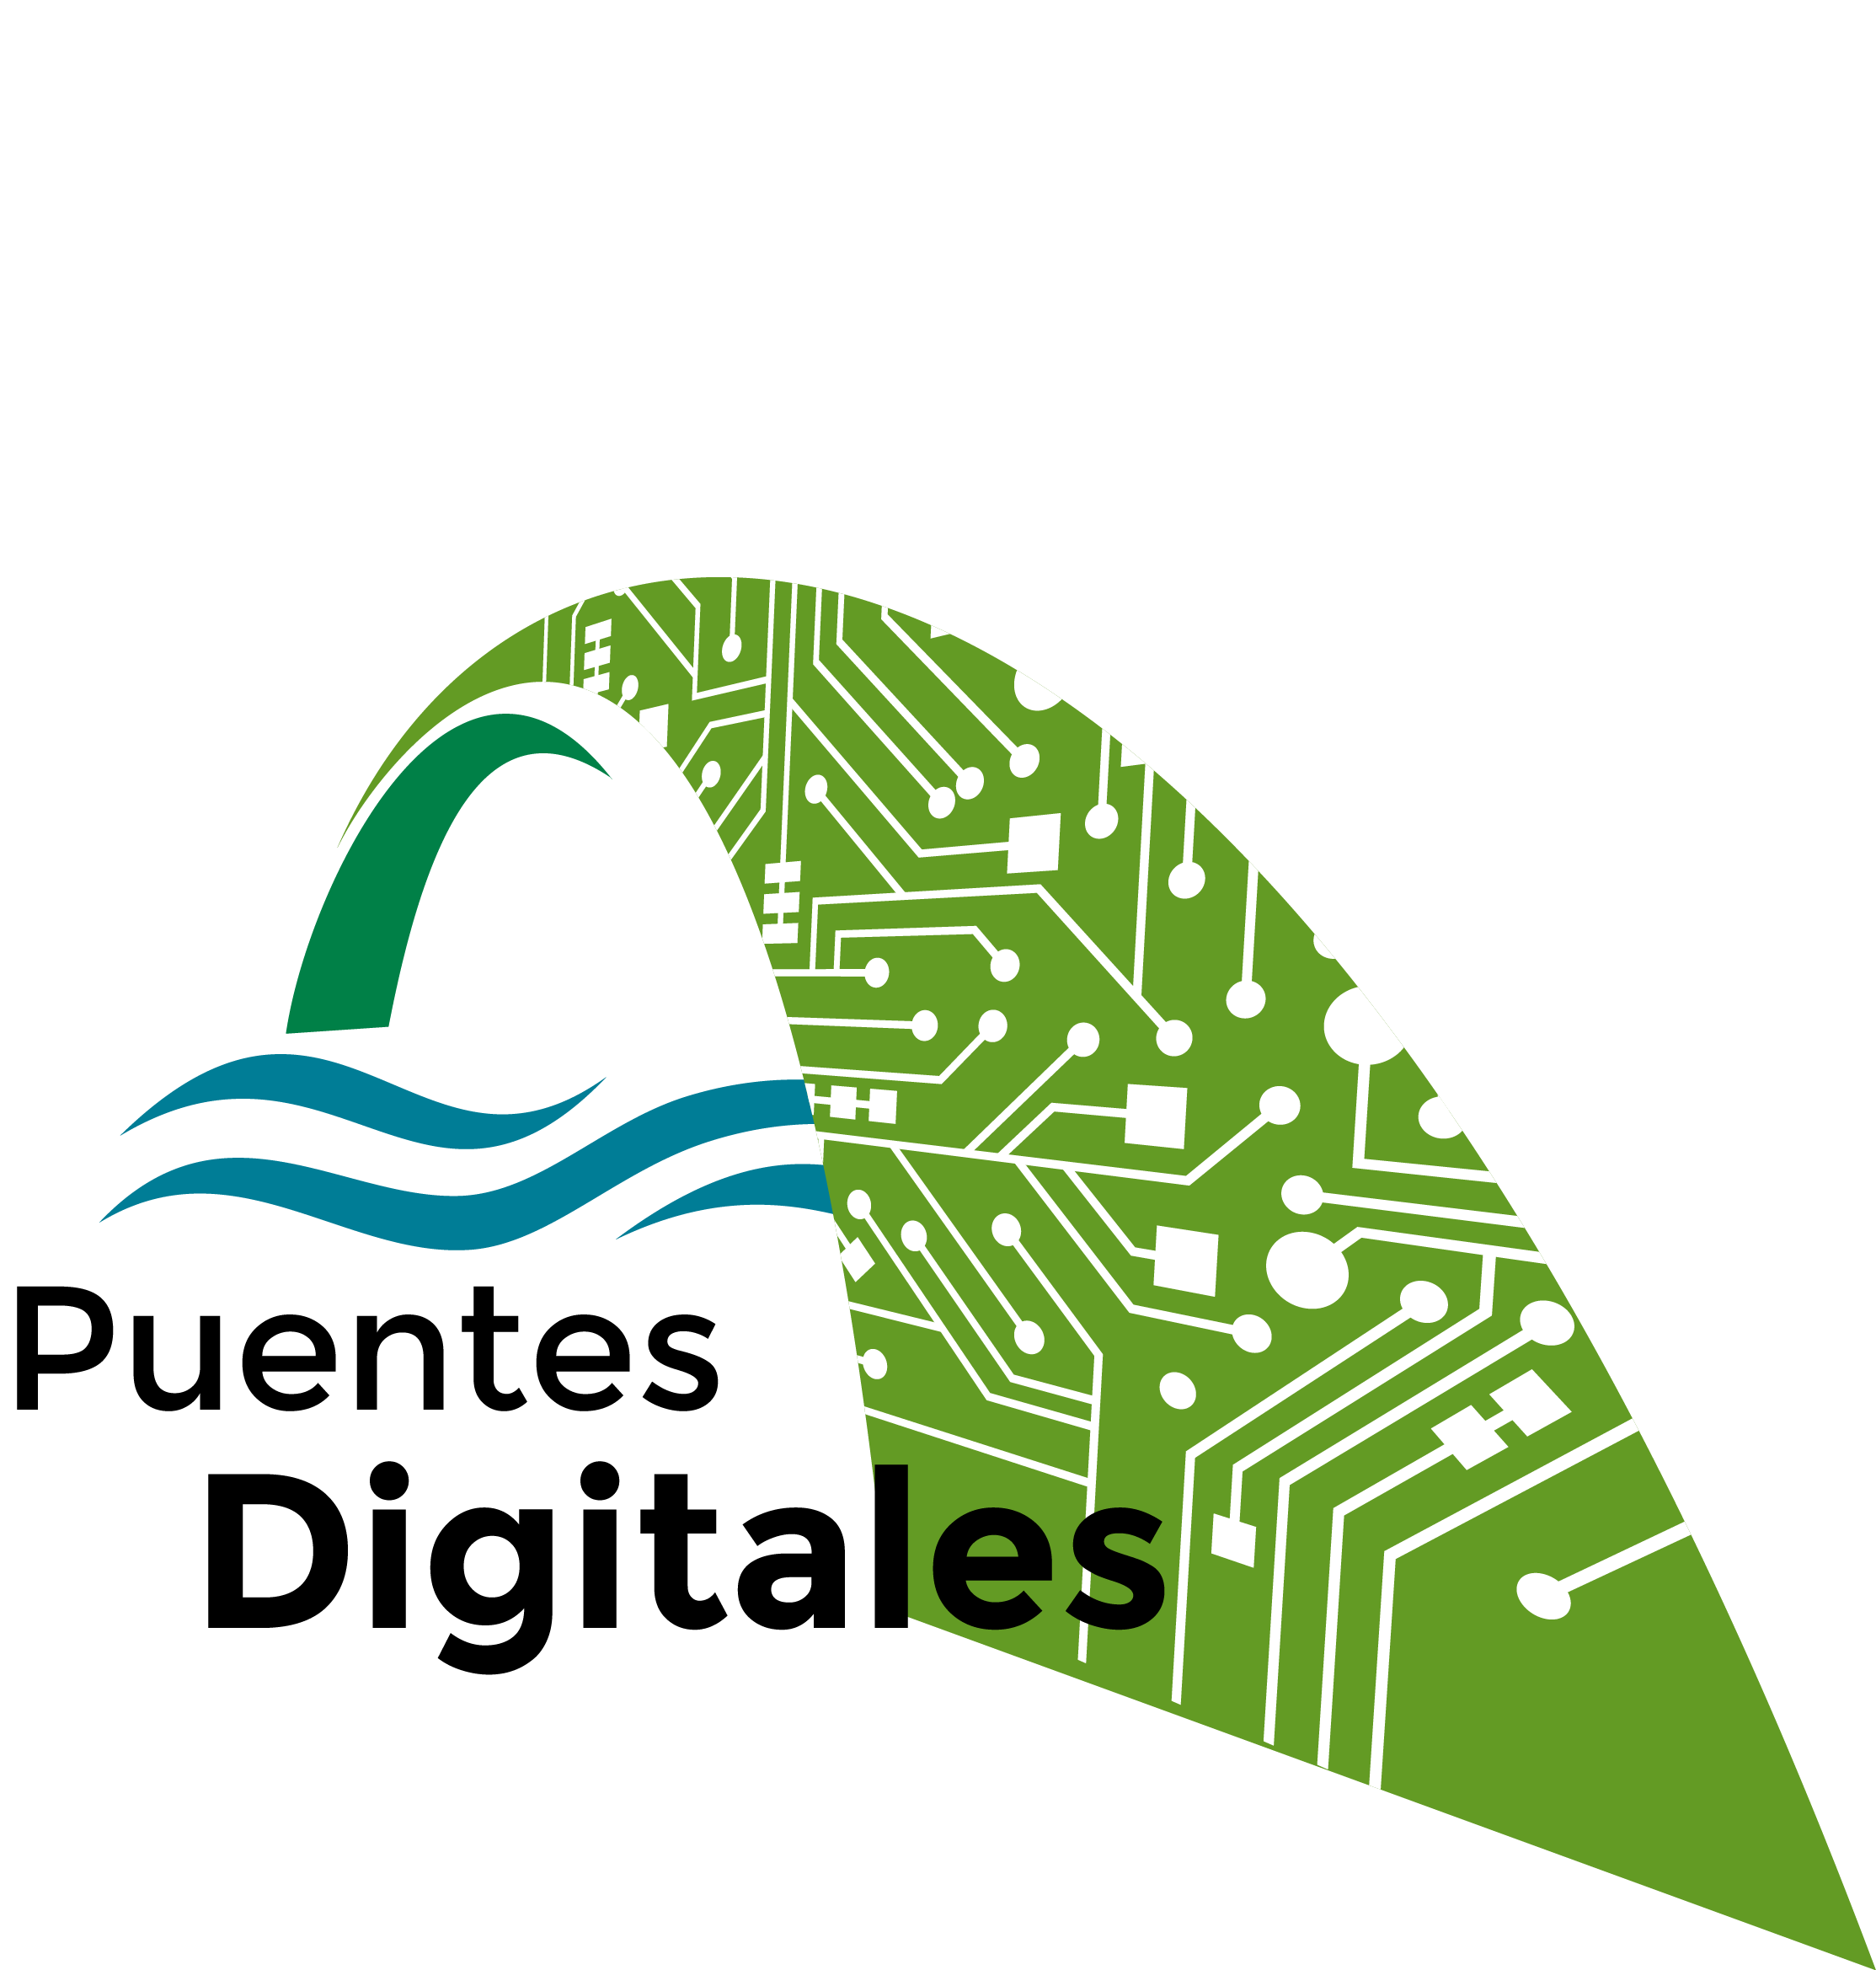 Puentes Digitales